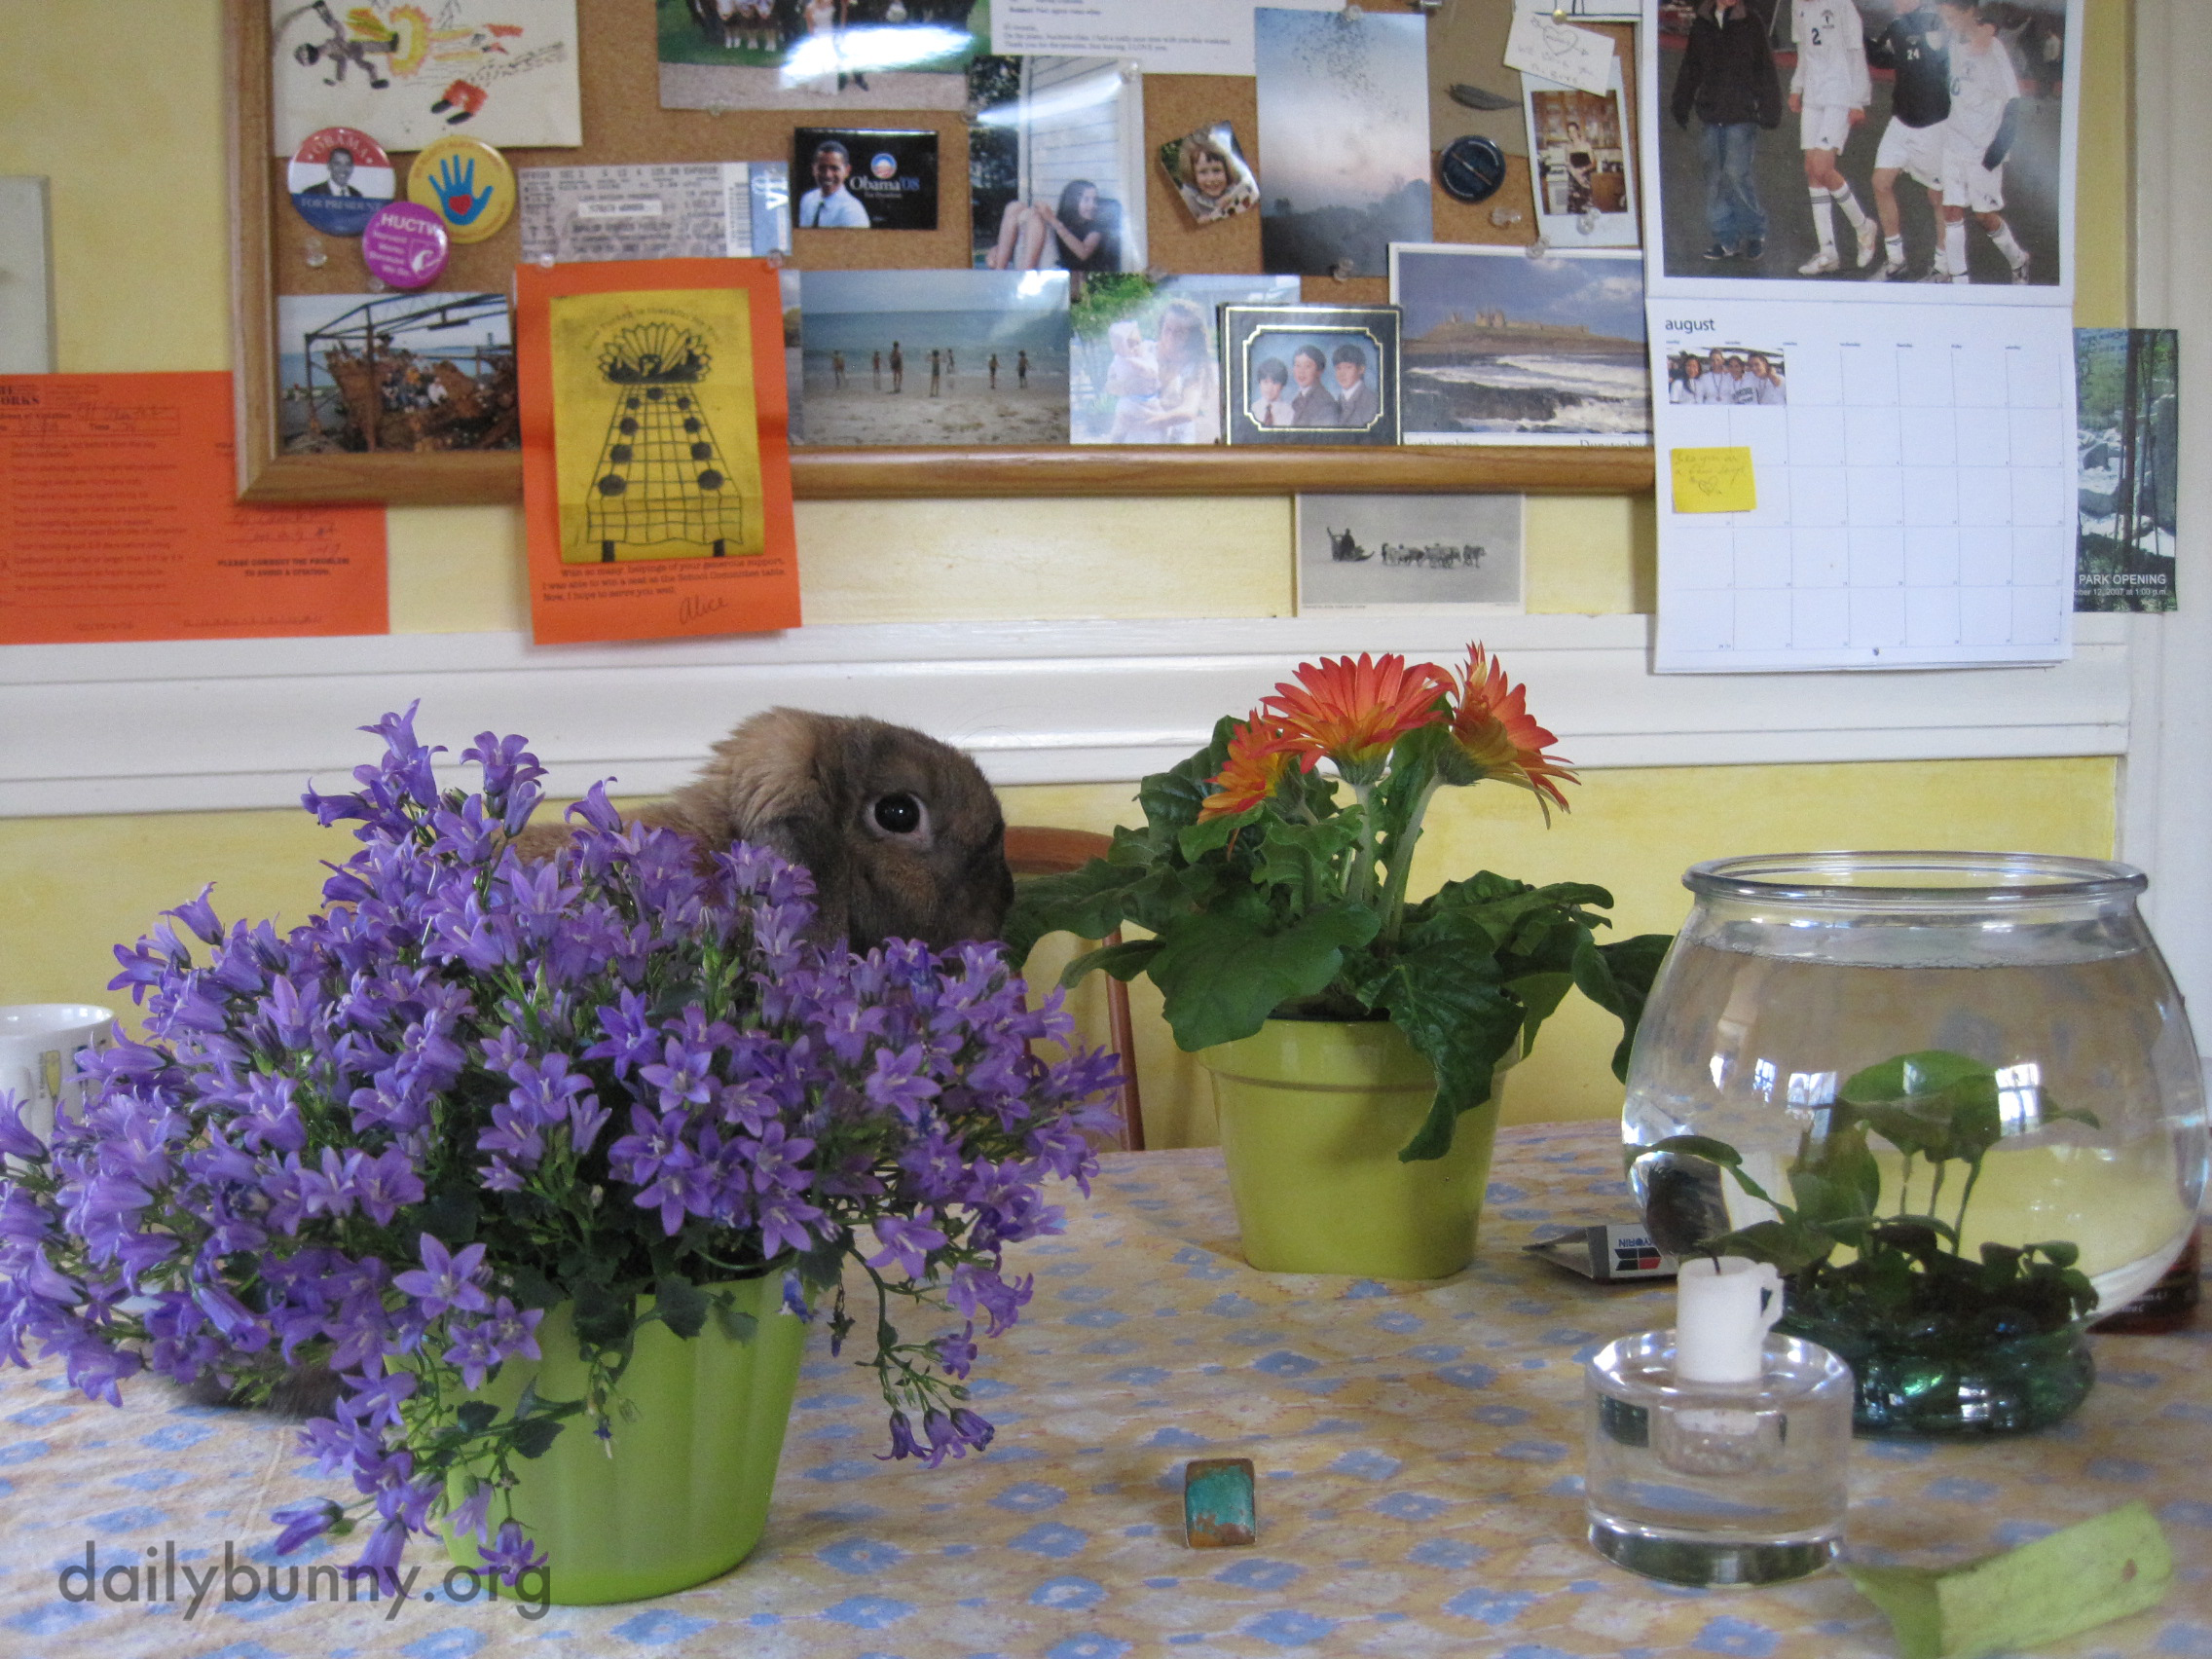 Bunny Tries to Hide Behind the Flowers After Being Caught on the Table 2